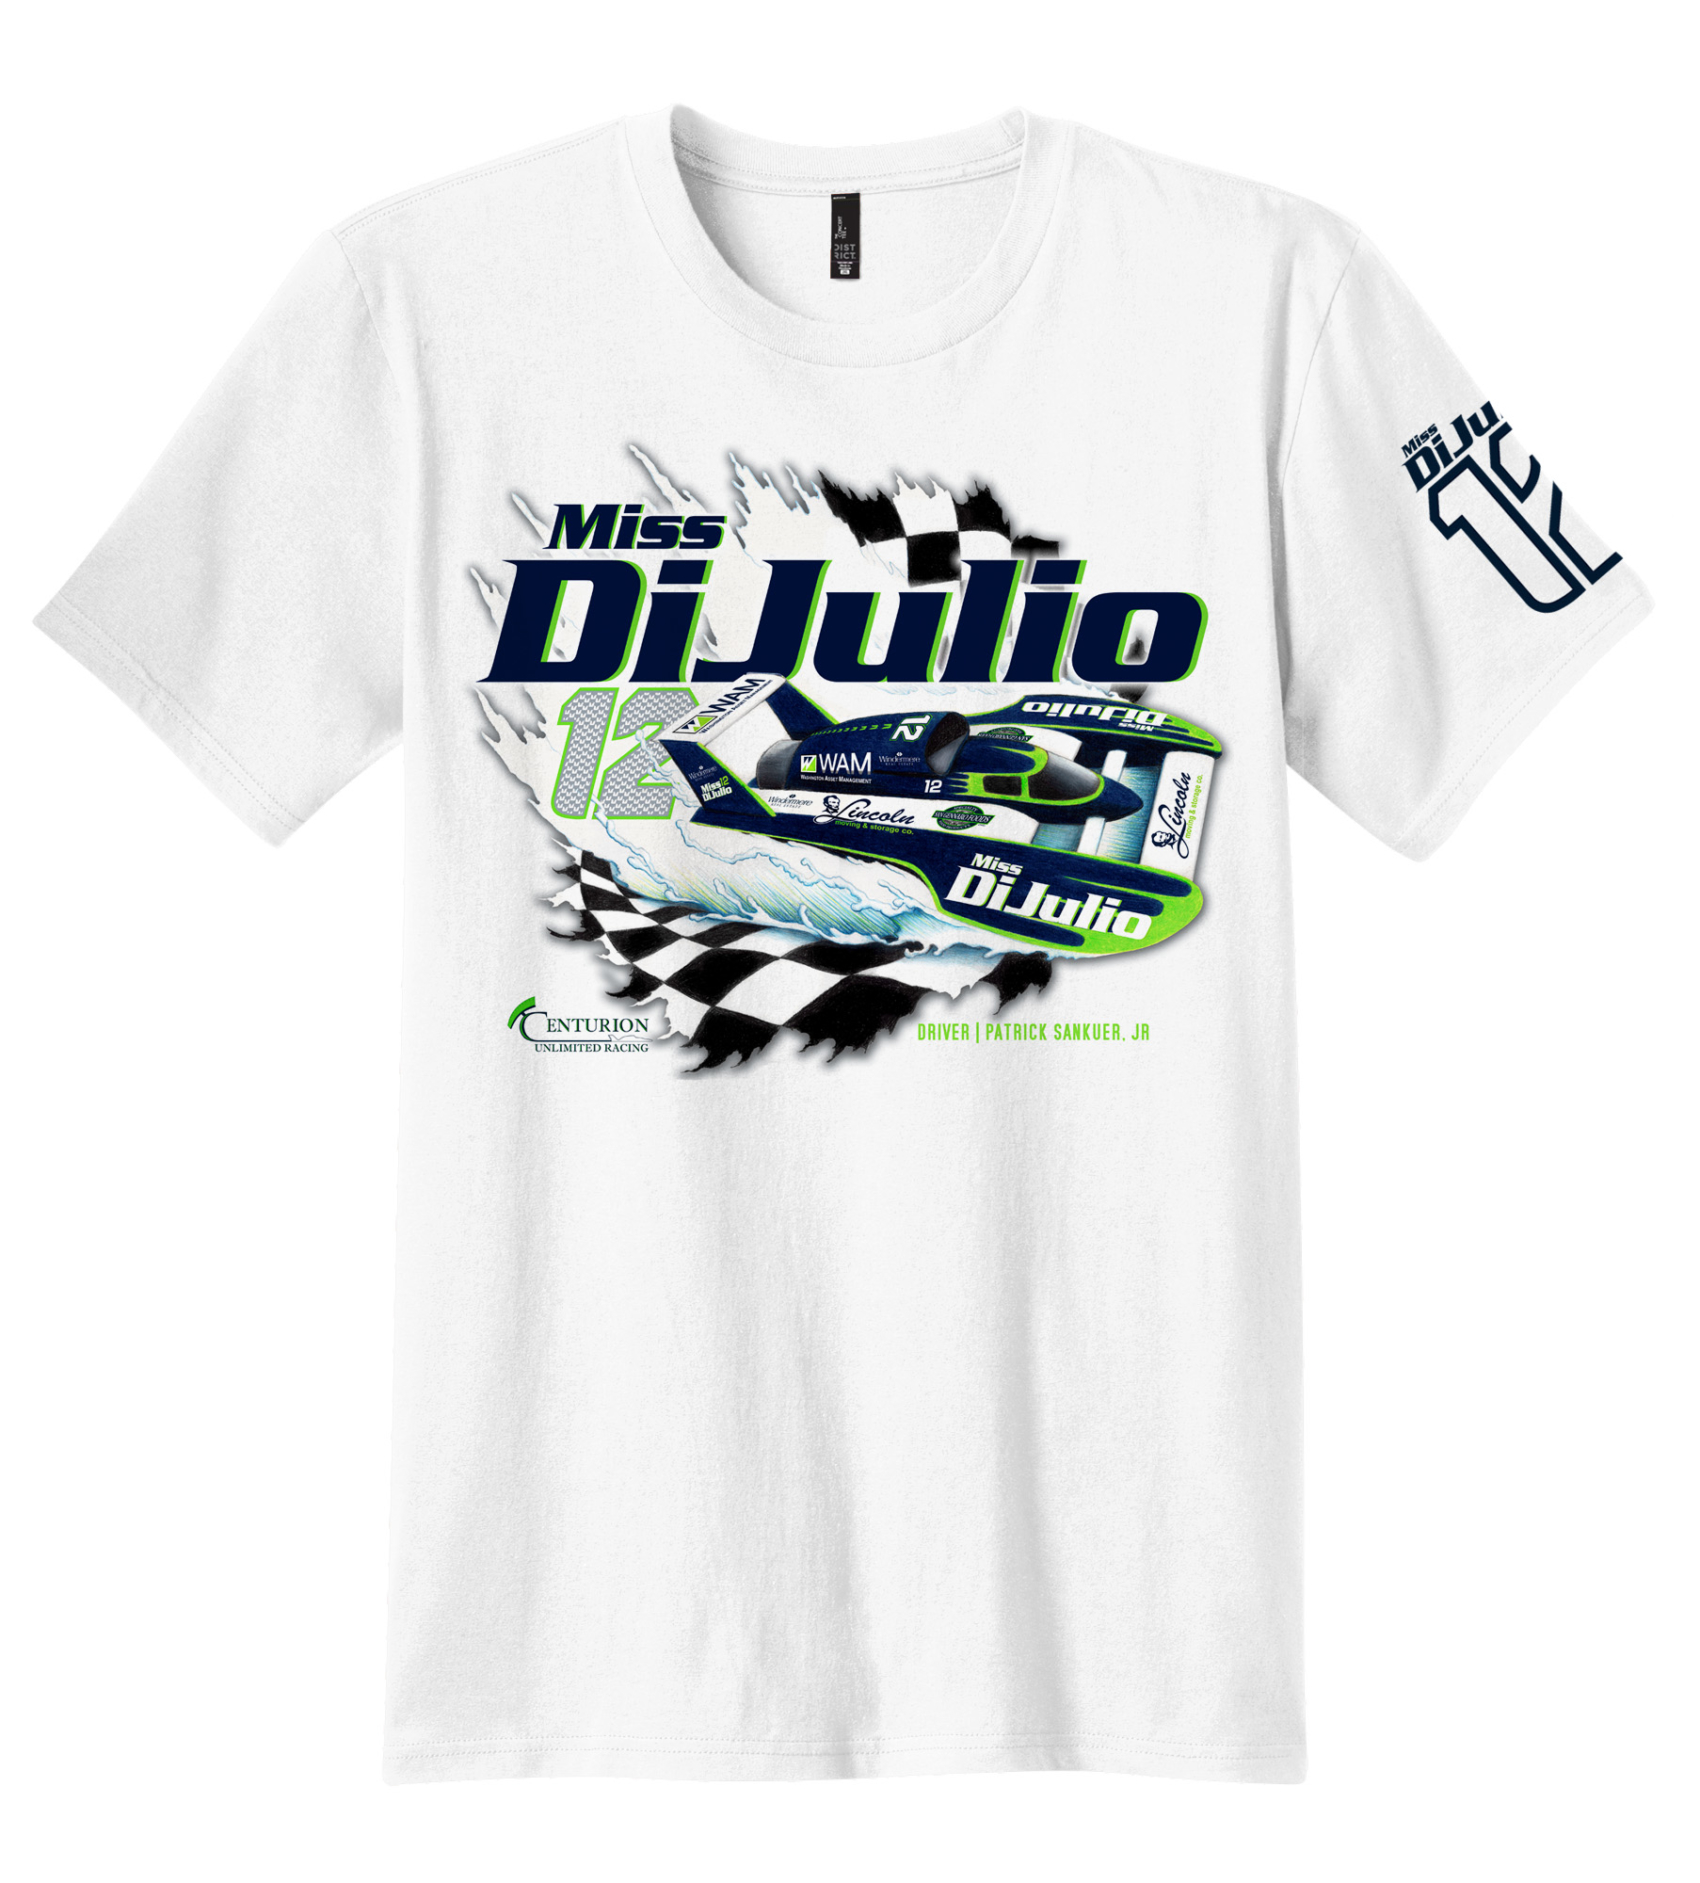 Miss DiJulio Tee Shirt Design